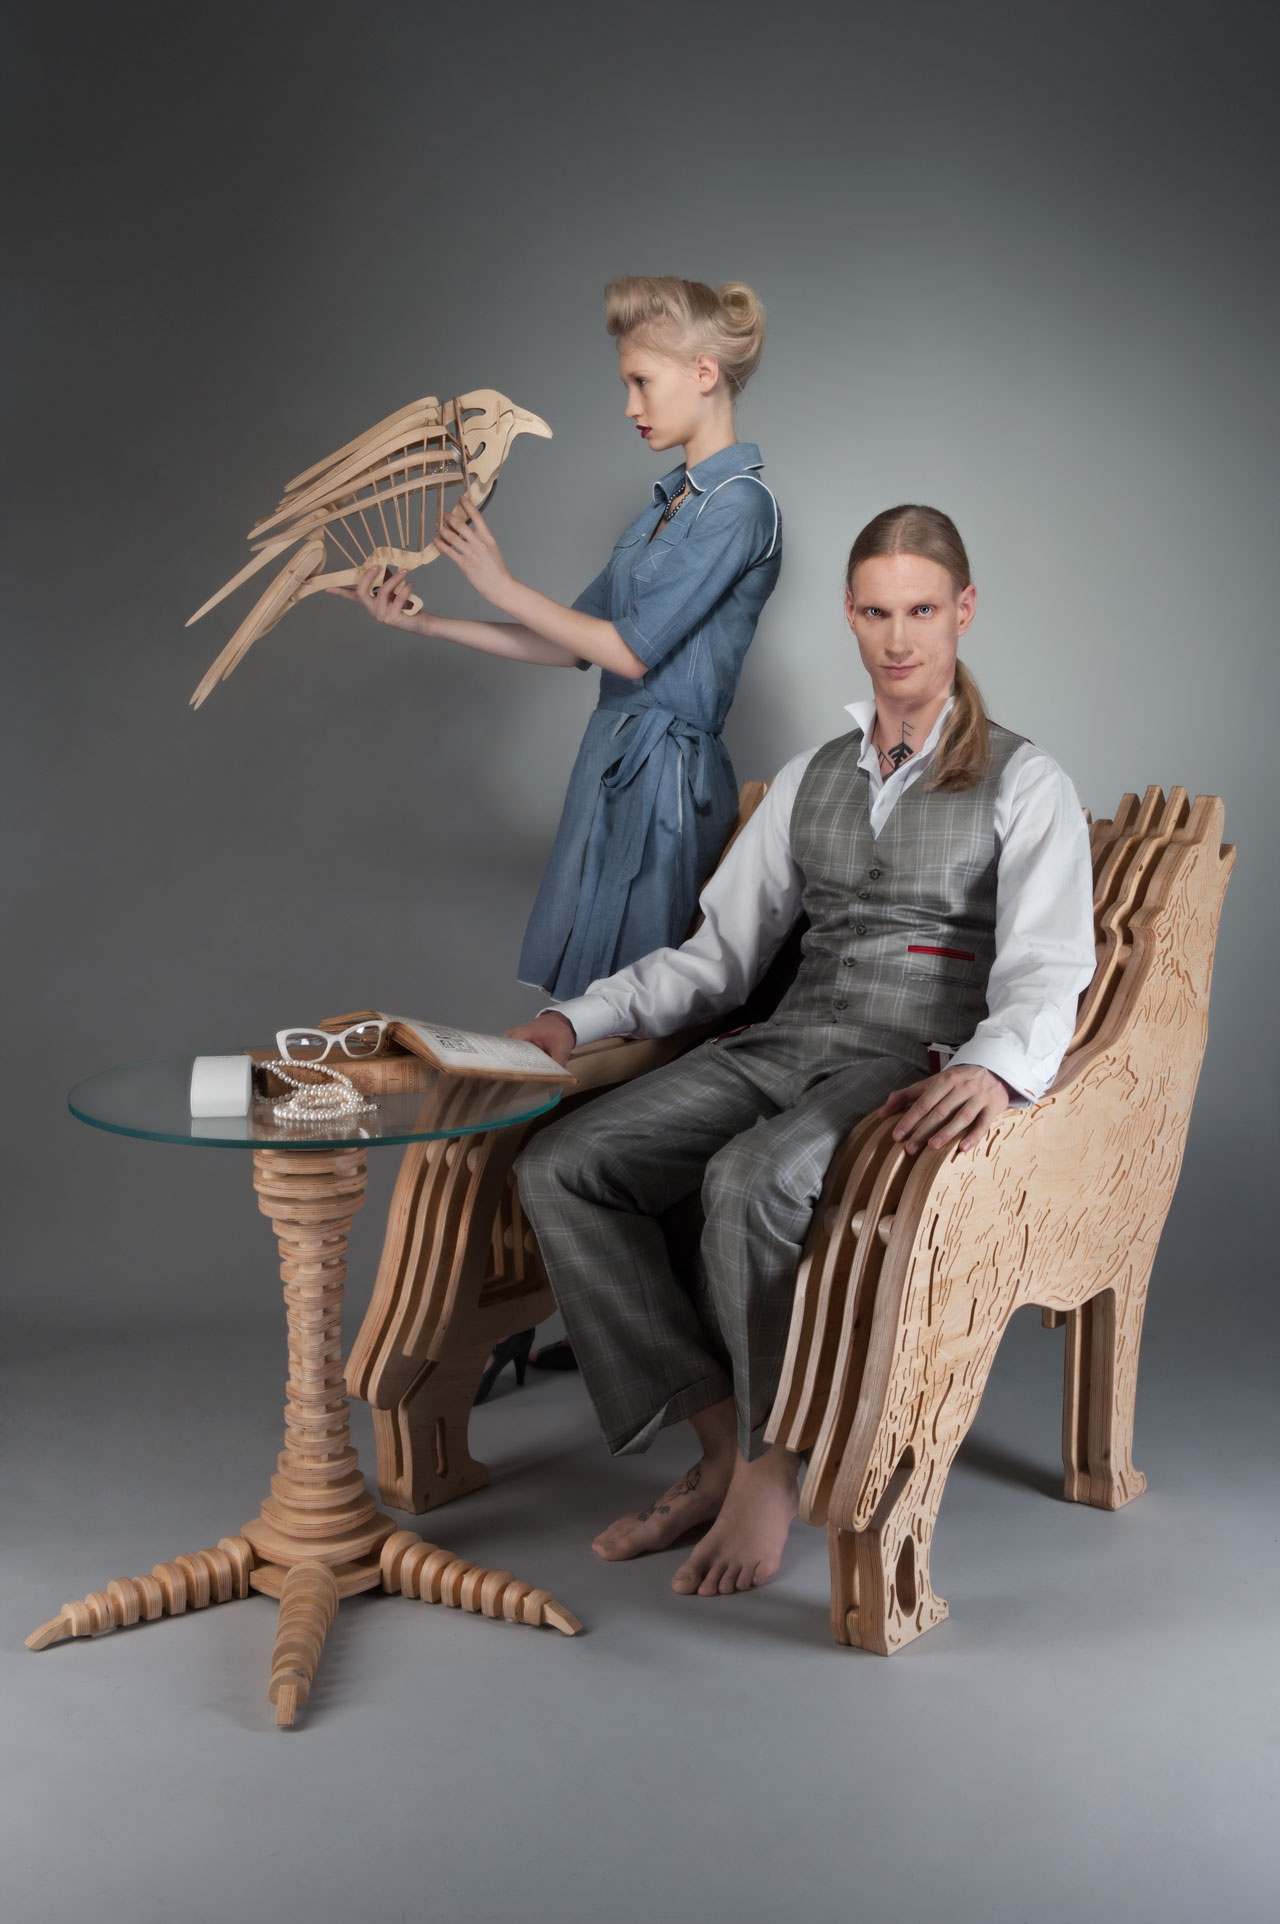 A series of furniture inspired by fables by SVAROG. Photo by Aneta Kowalczyk & Kacper Lipinski/Kiali.